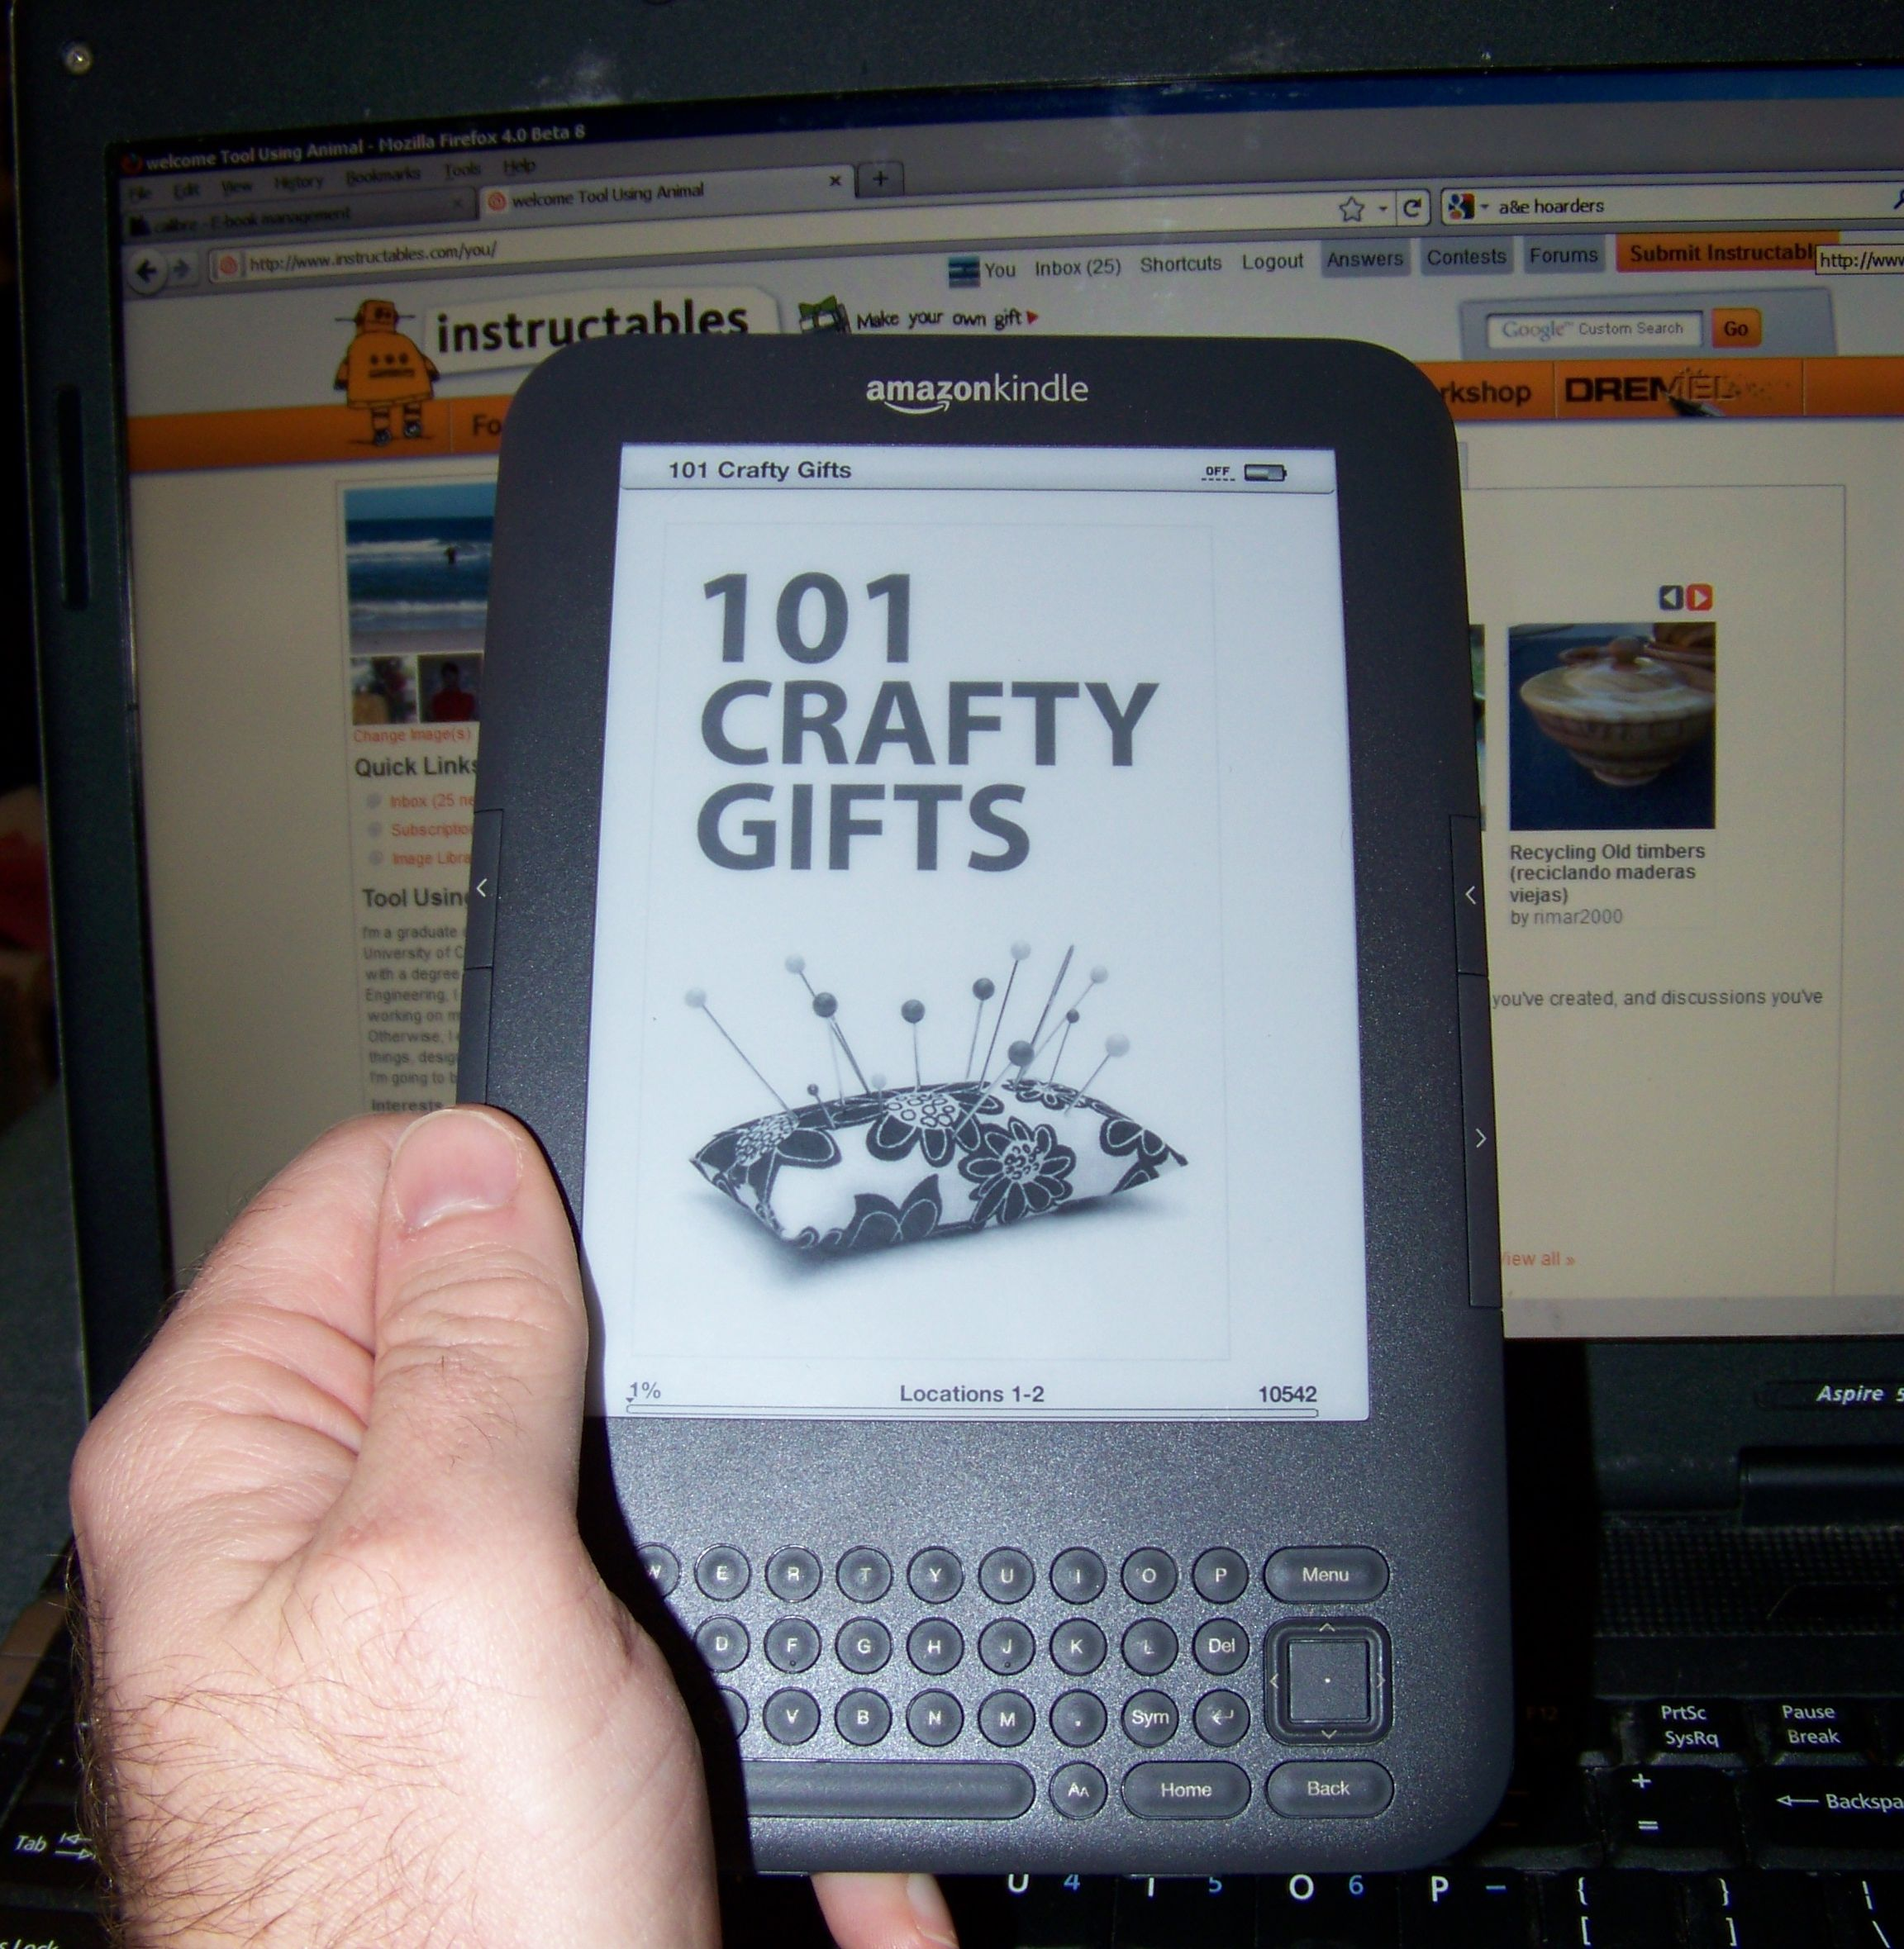 Epub Libres Converting Epub Formatted Books To Use On The Kindle 4 Steps